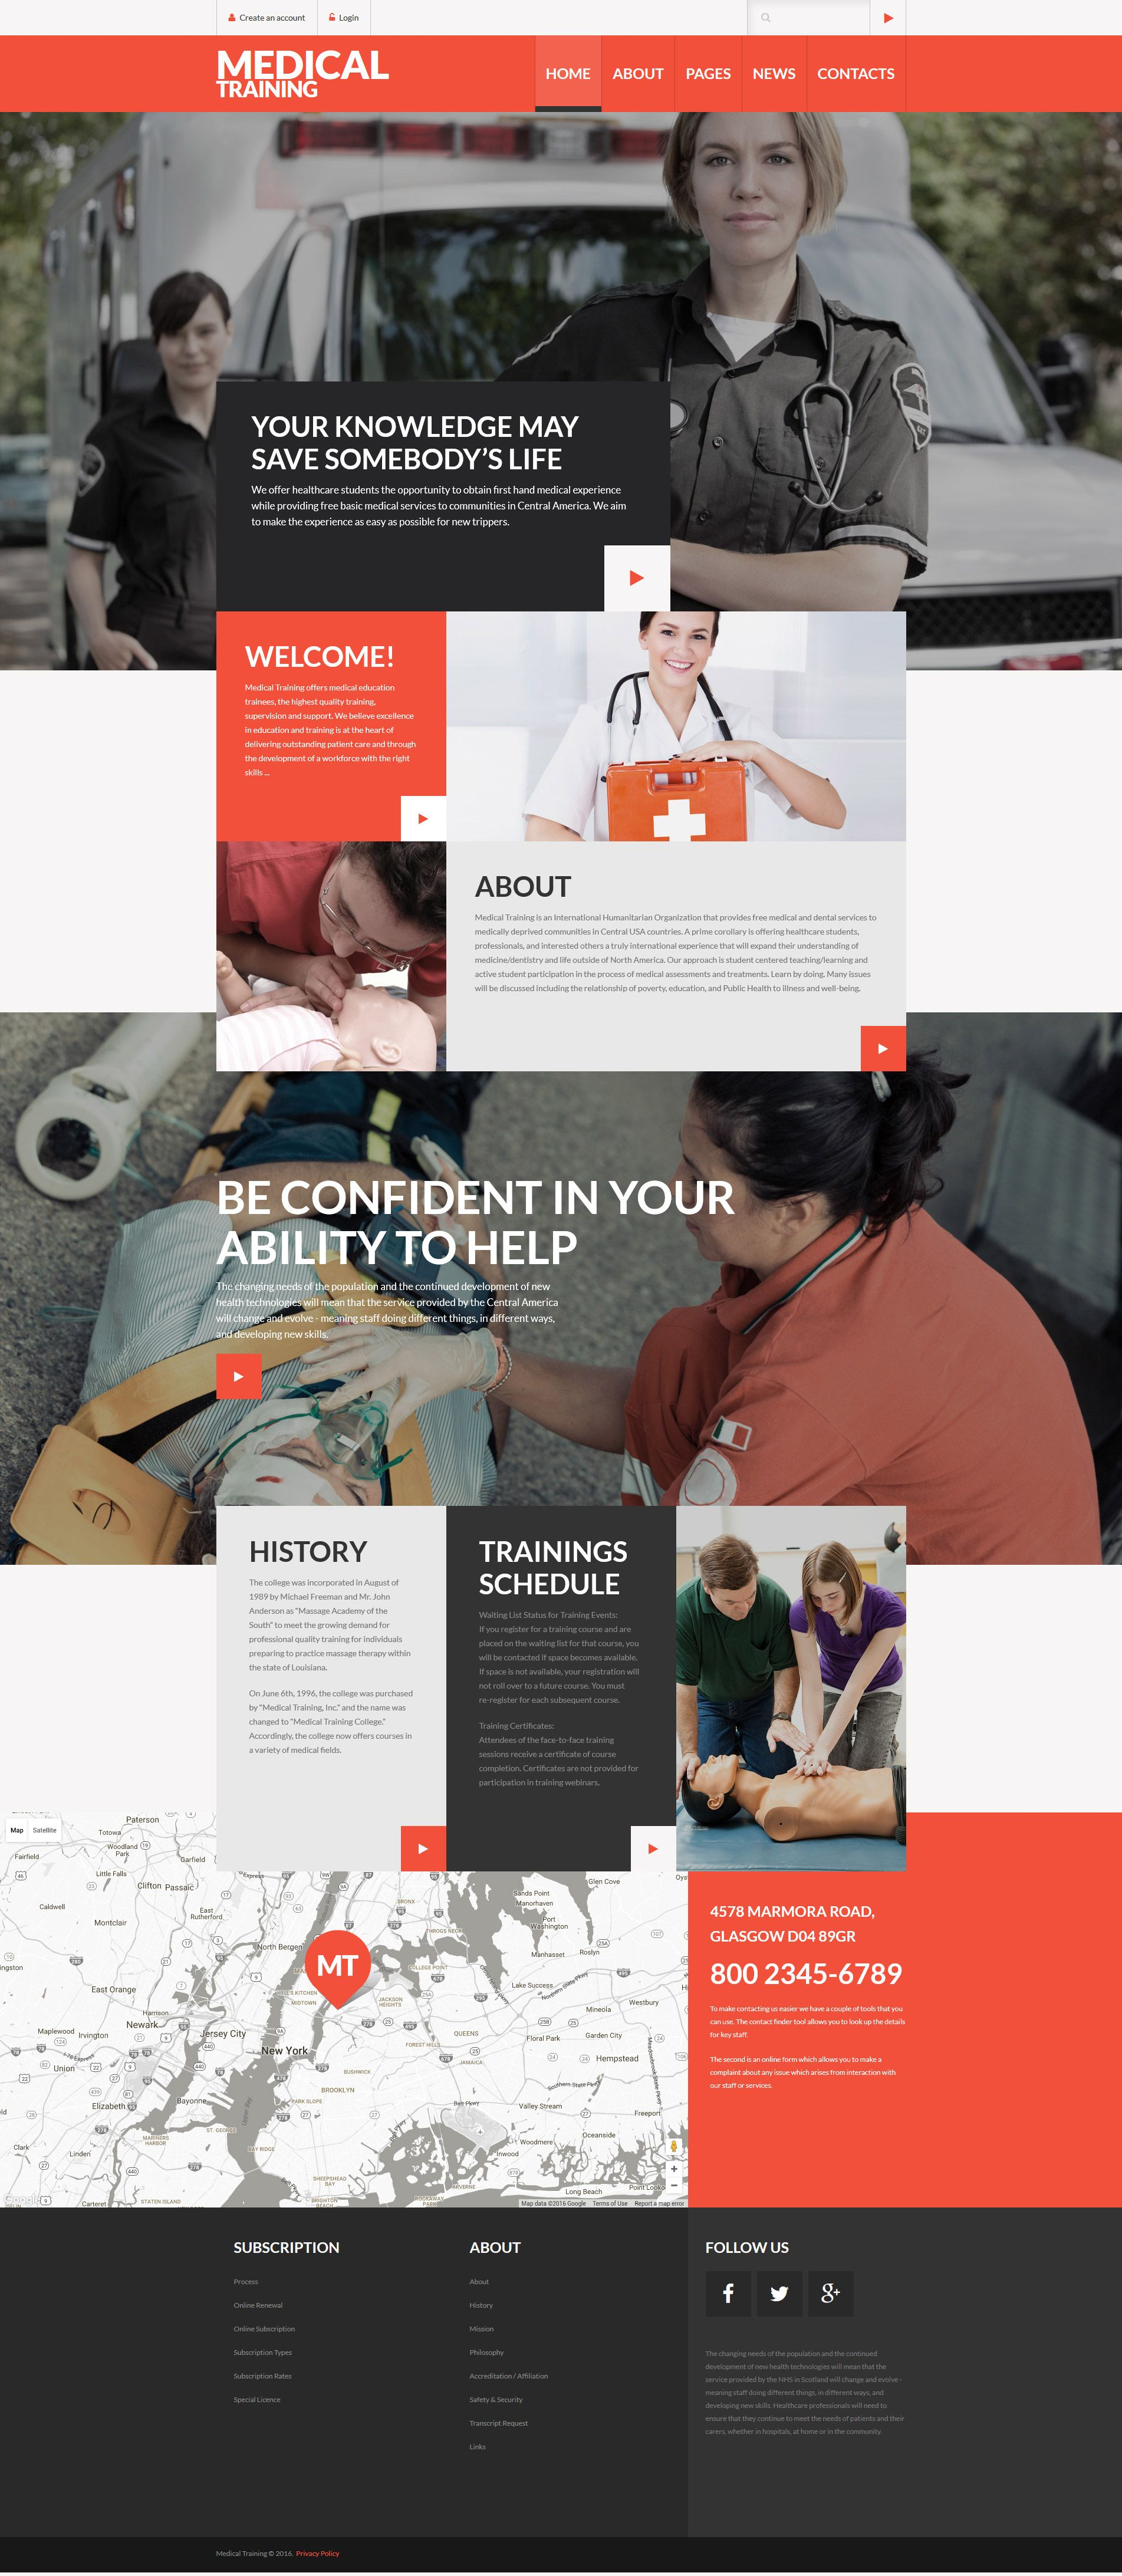 Medical Training Joomla Template | Template, Mobile ui design and ...